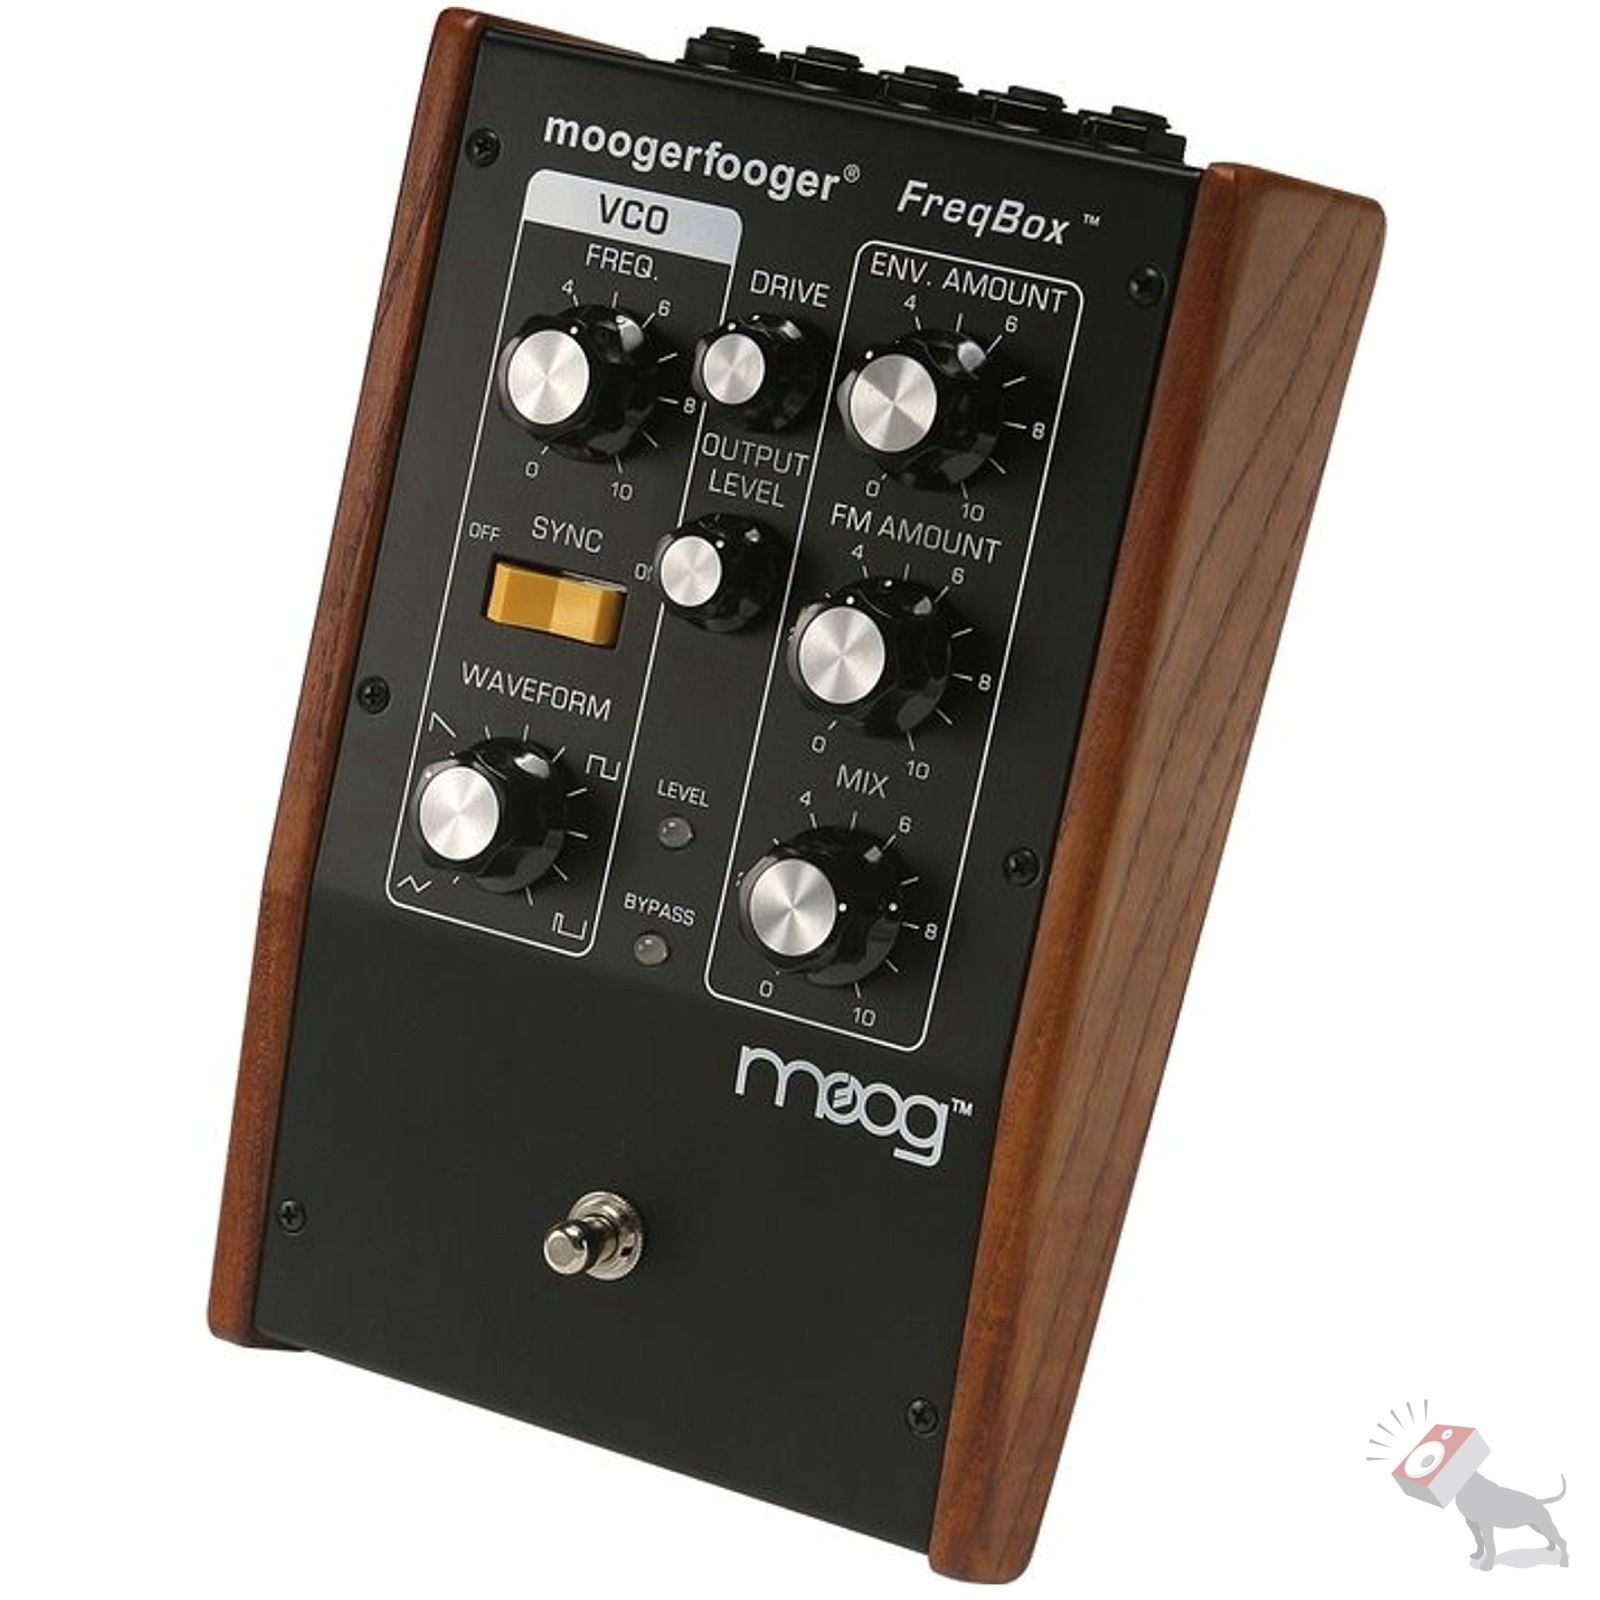 moog mf 107 moogerfooger freqbox guitar bass keyboard synth effects pedal mf107 ebay. Black Bedroom Furniture Sets. Home Design Ideas